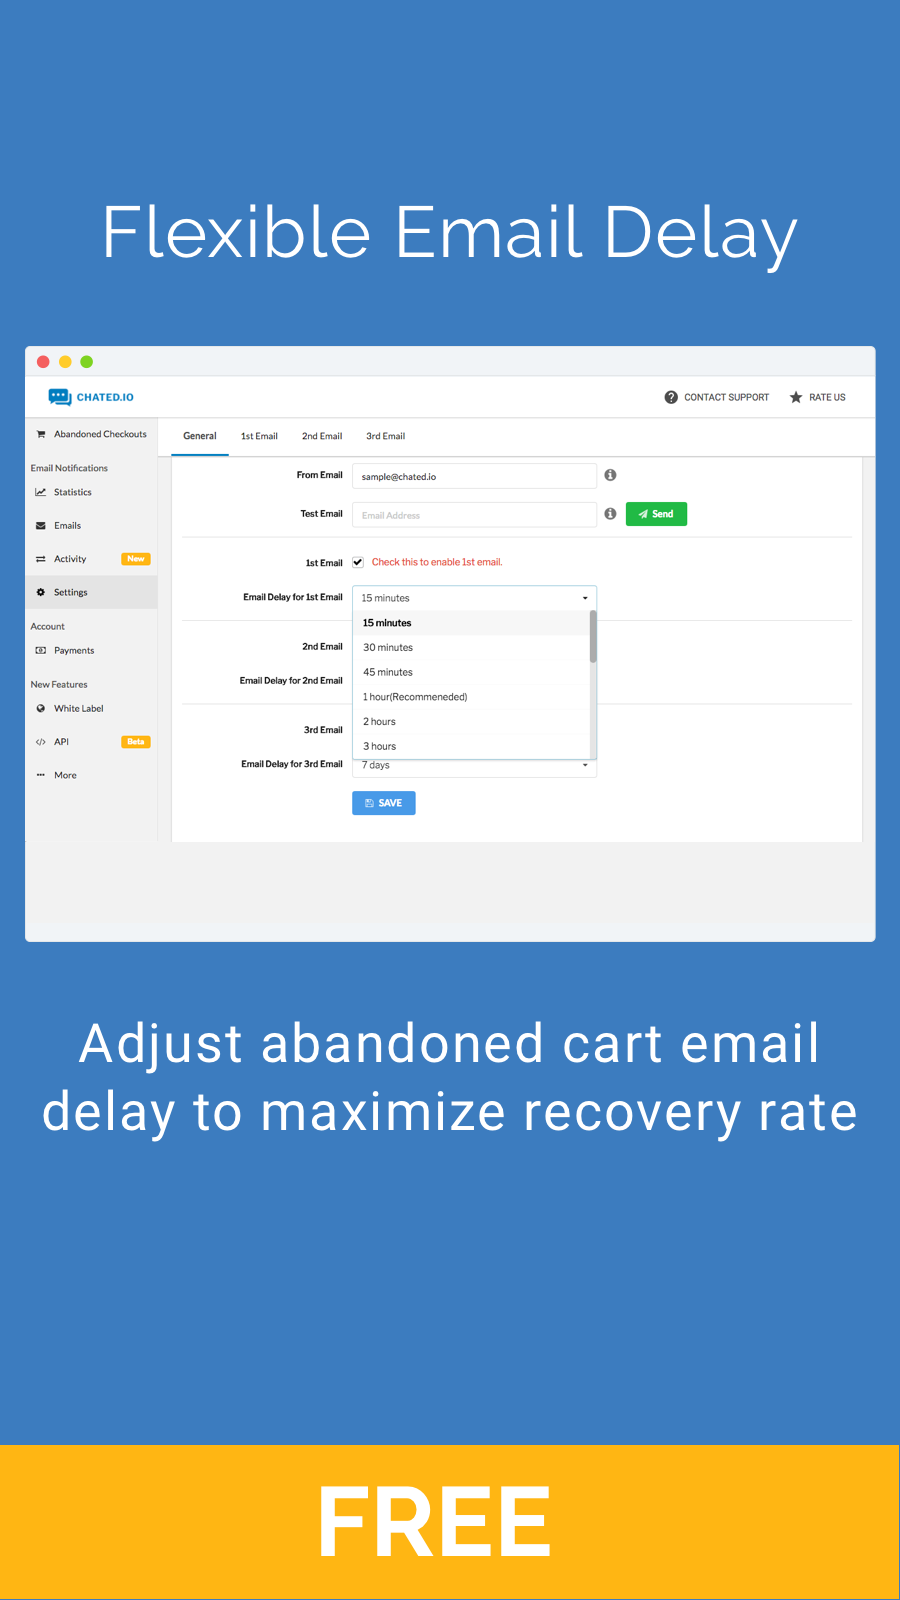 Flexible Email Delay